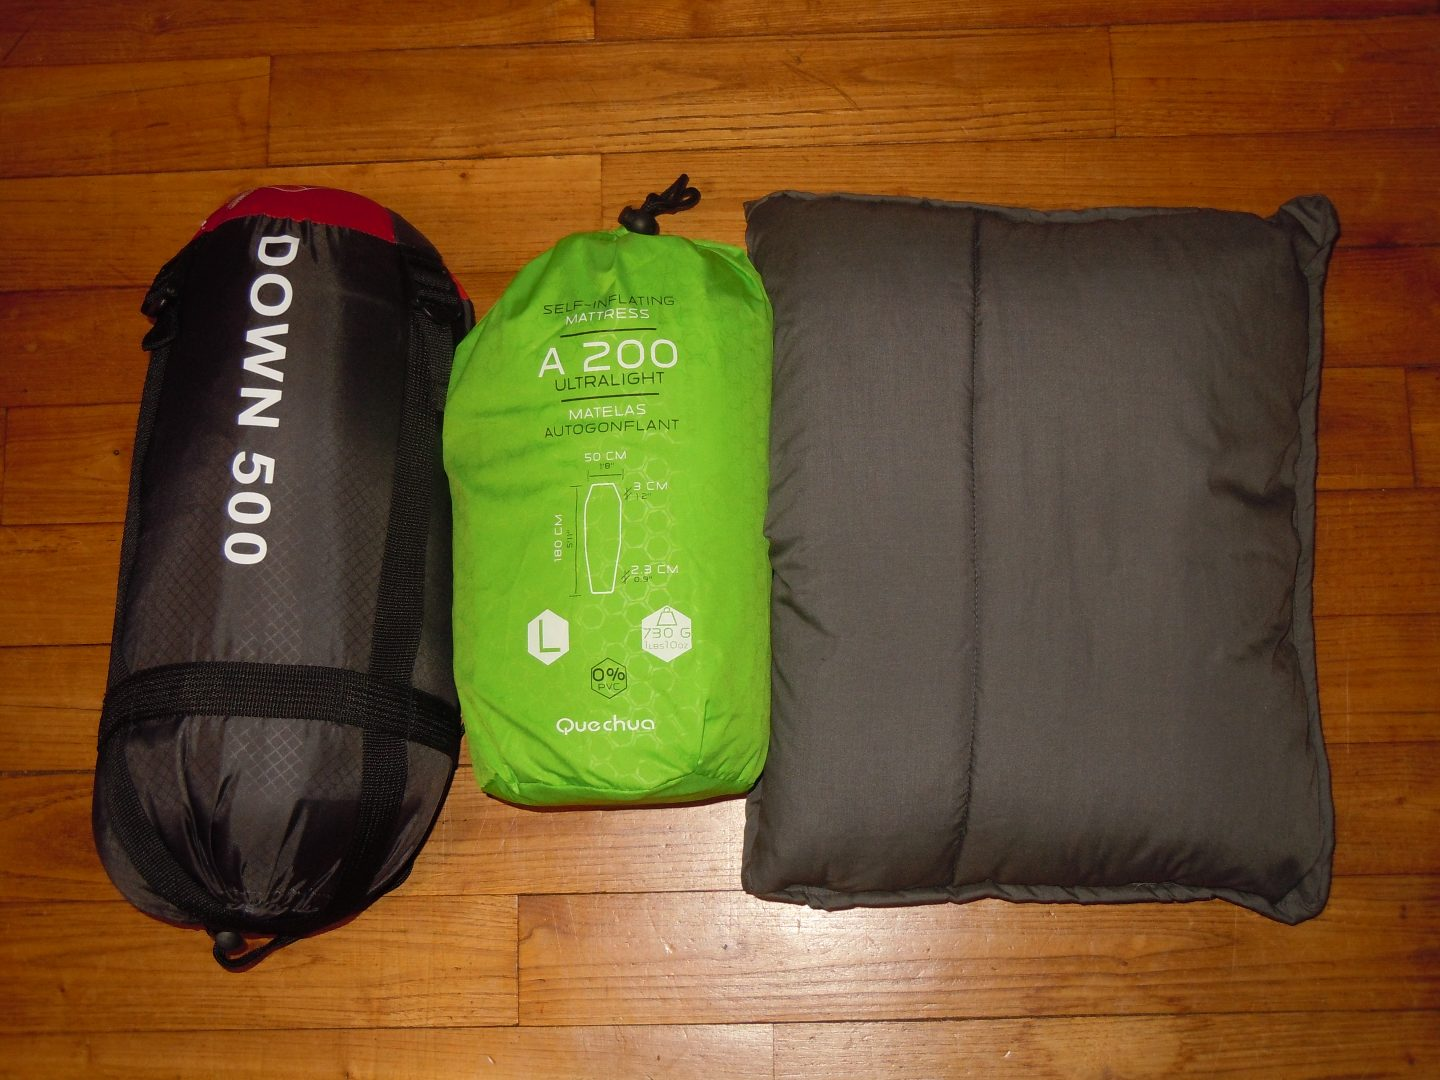 RTW packing list camping gear